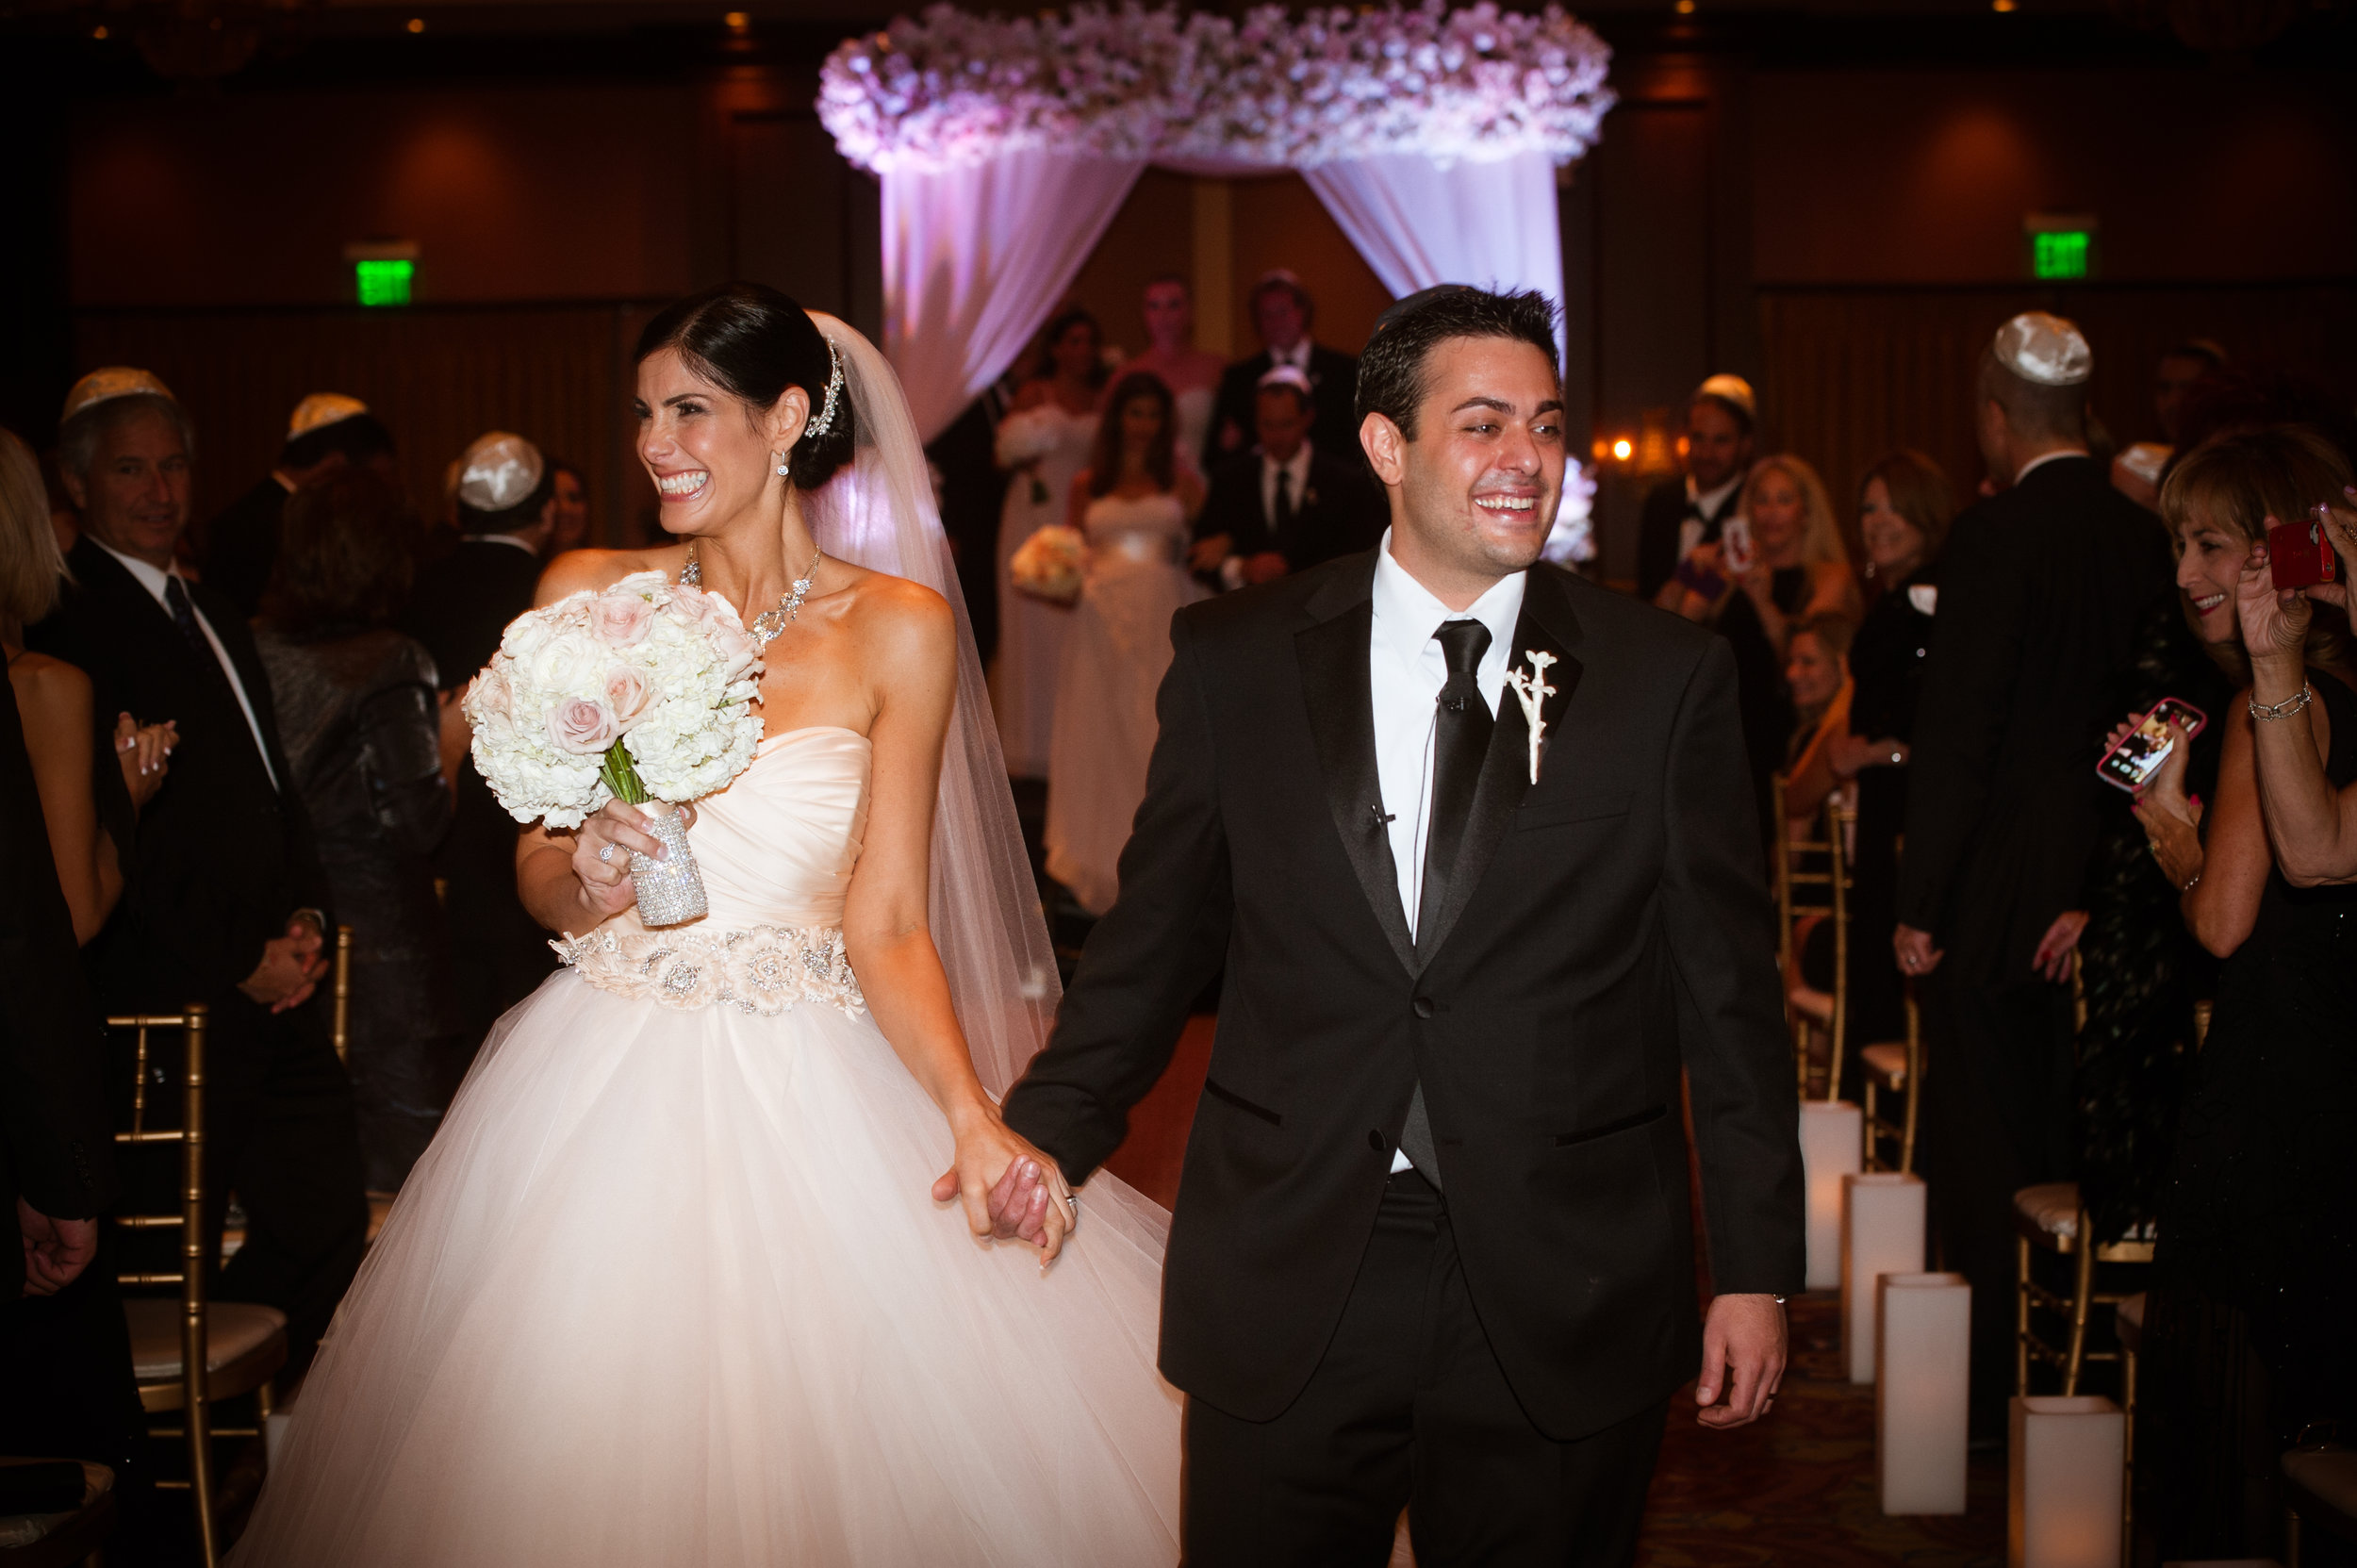 18 bride and groom leaving ceremony officially married bride and groom going to reception Christine Johnson Photography Life Design Events.jpg